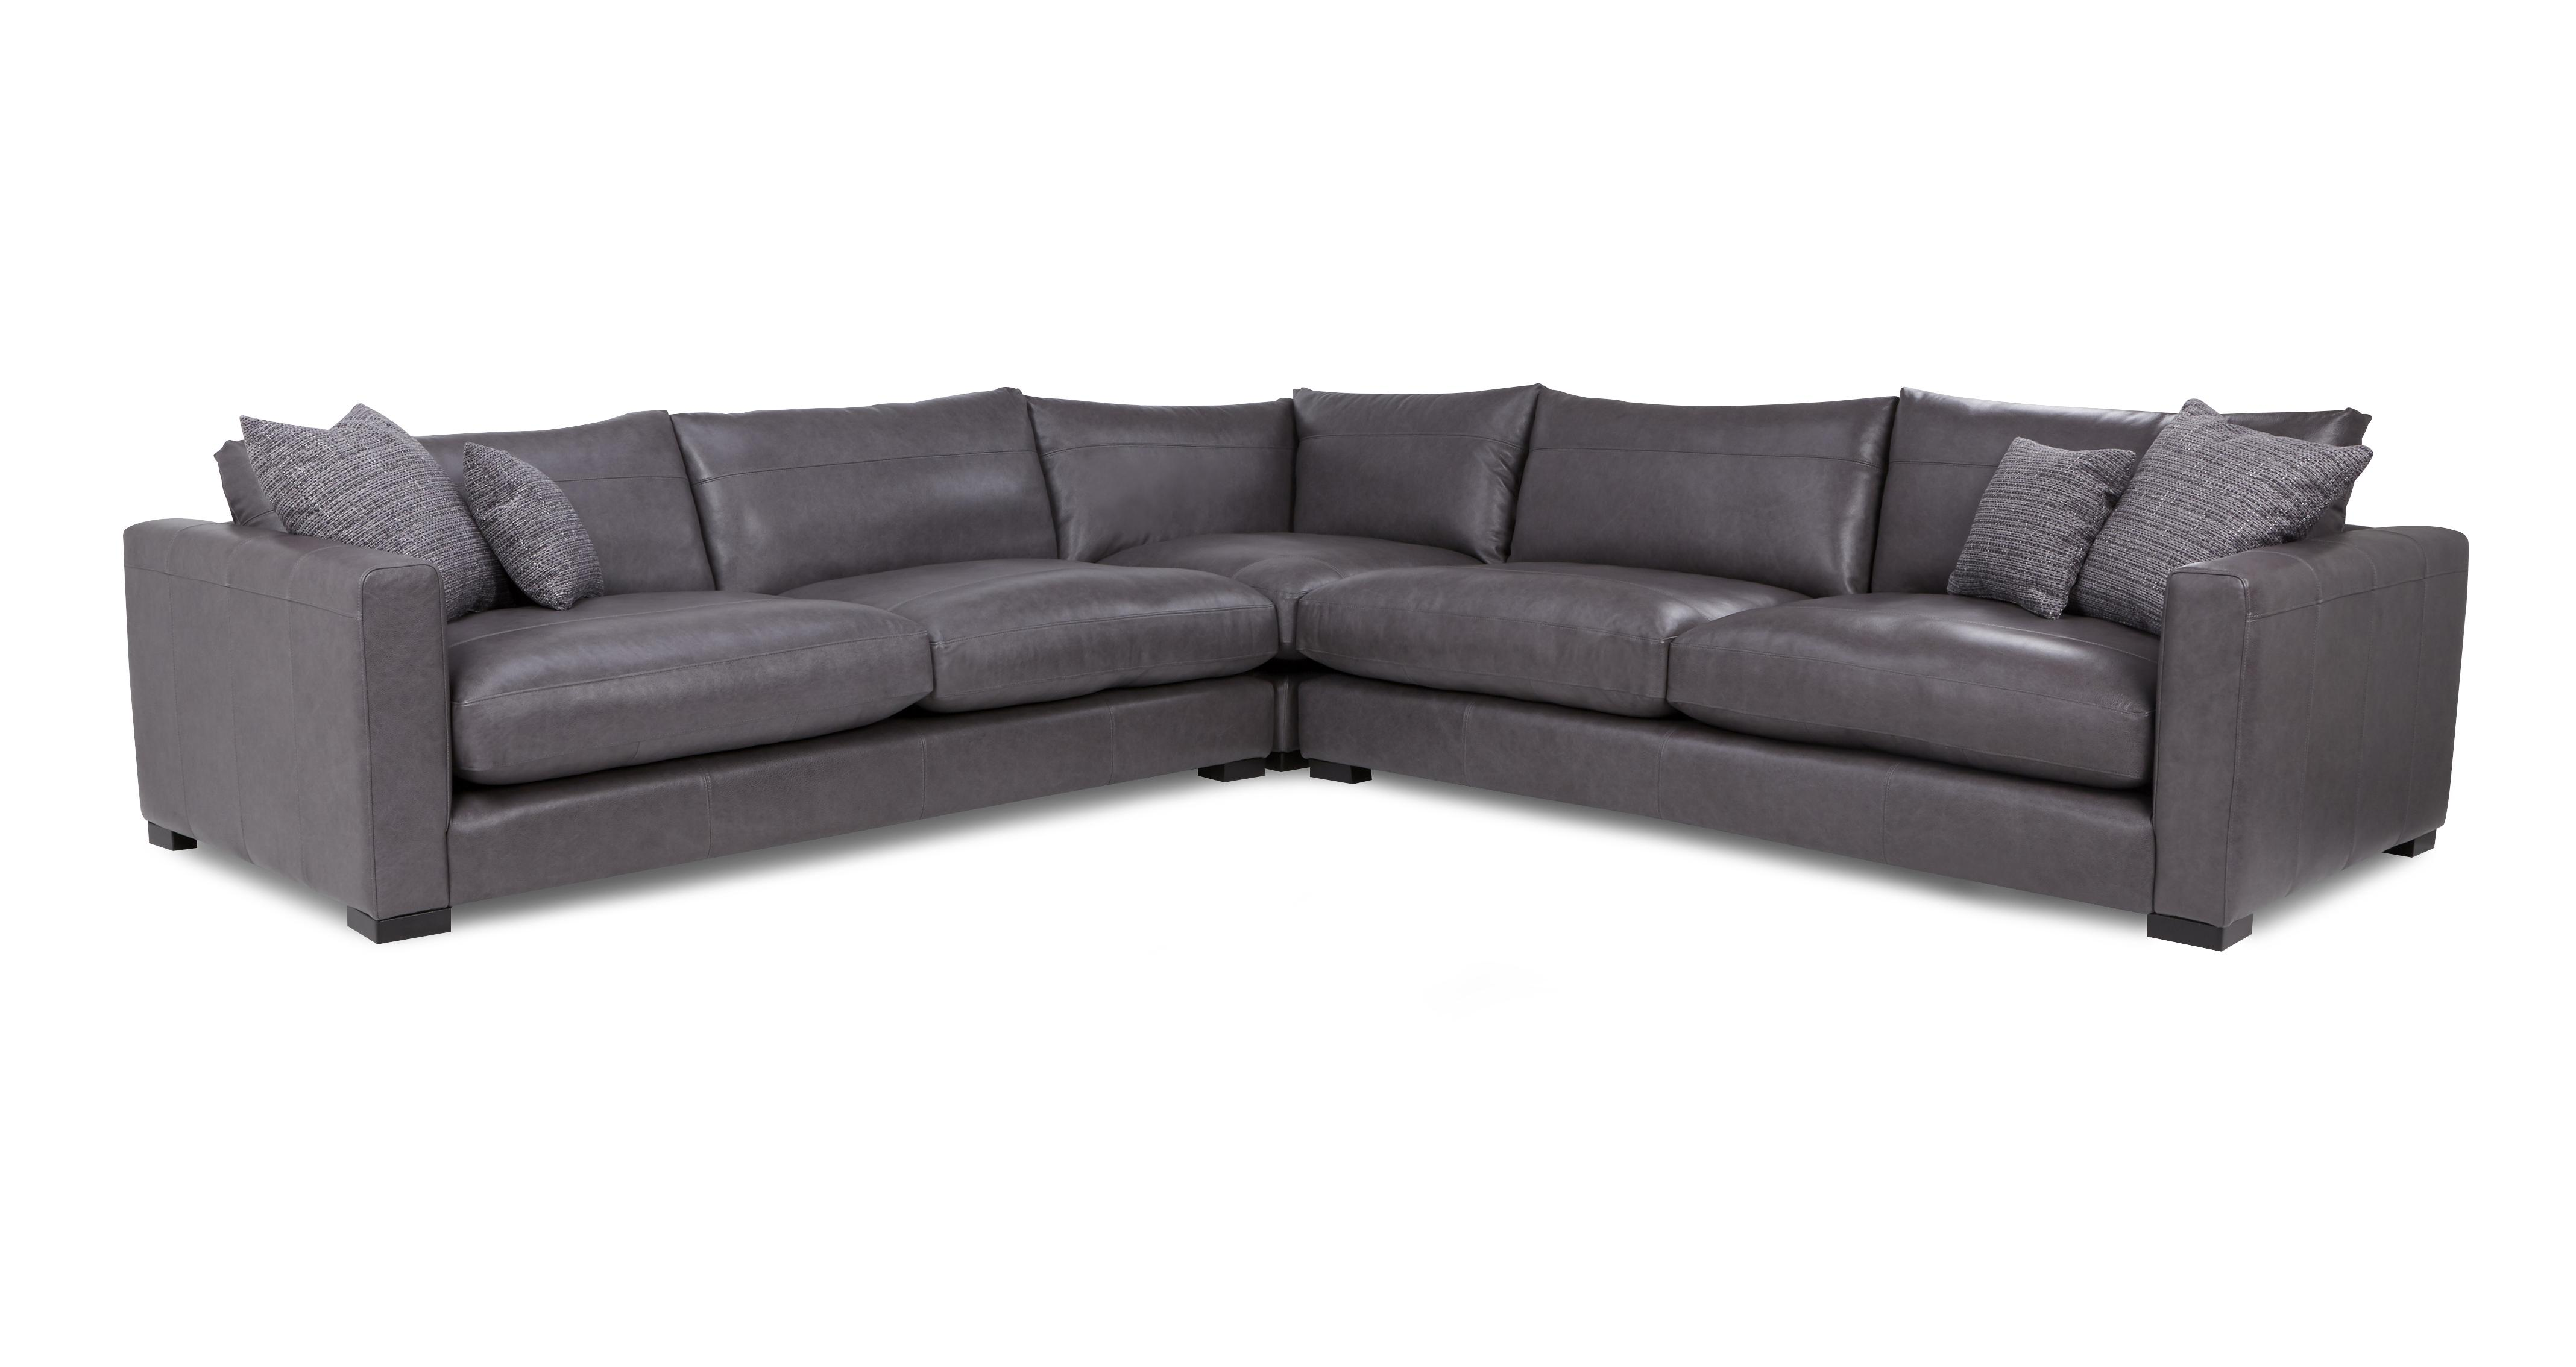 Dillon Leather Large Corner Sofa | DFS